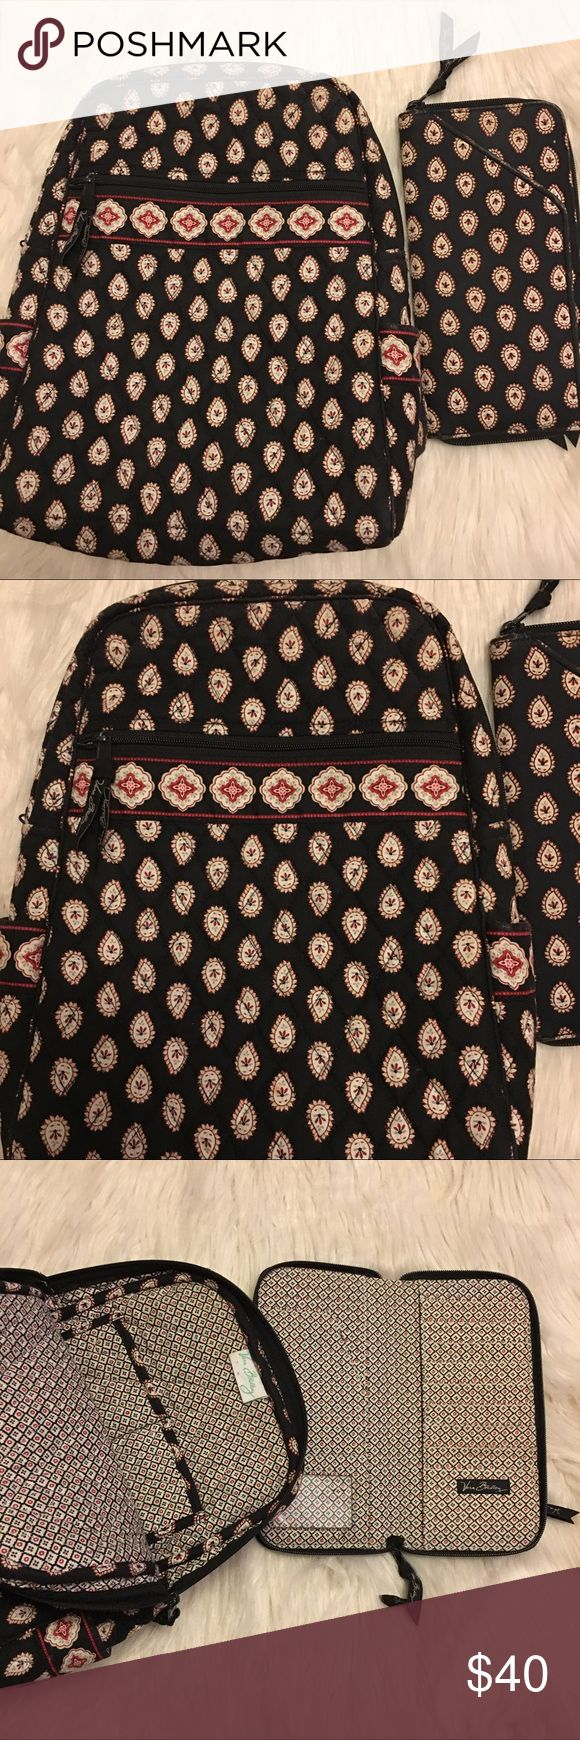 """Vera Bradley Classic Black Small Backpack & Wallet Vera Bradley """"Classic Black"""" Pattern (retired 01/2008), Small backpack and wallet set, good condition with some wear on the corners of the bag and wallet, dimensions: 9"""" wide x 13"""" high x 3.5"""" width....wallet 9.5""""x5"""" Vera Bradley Bags Backpacks"""